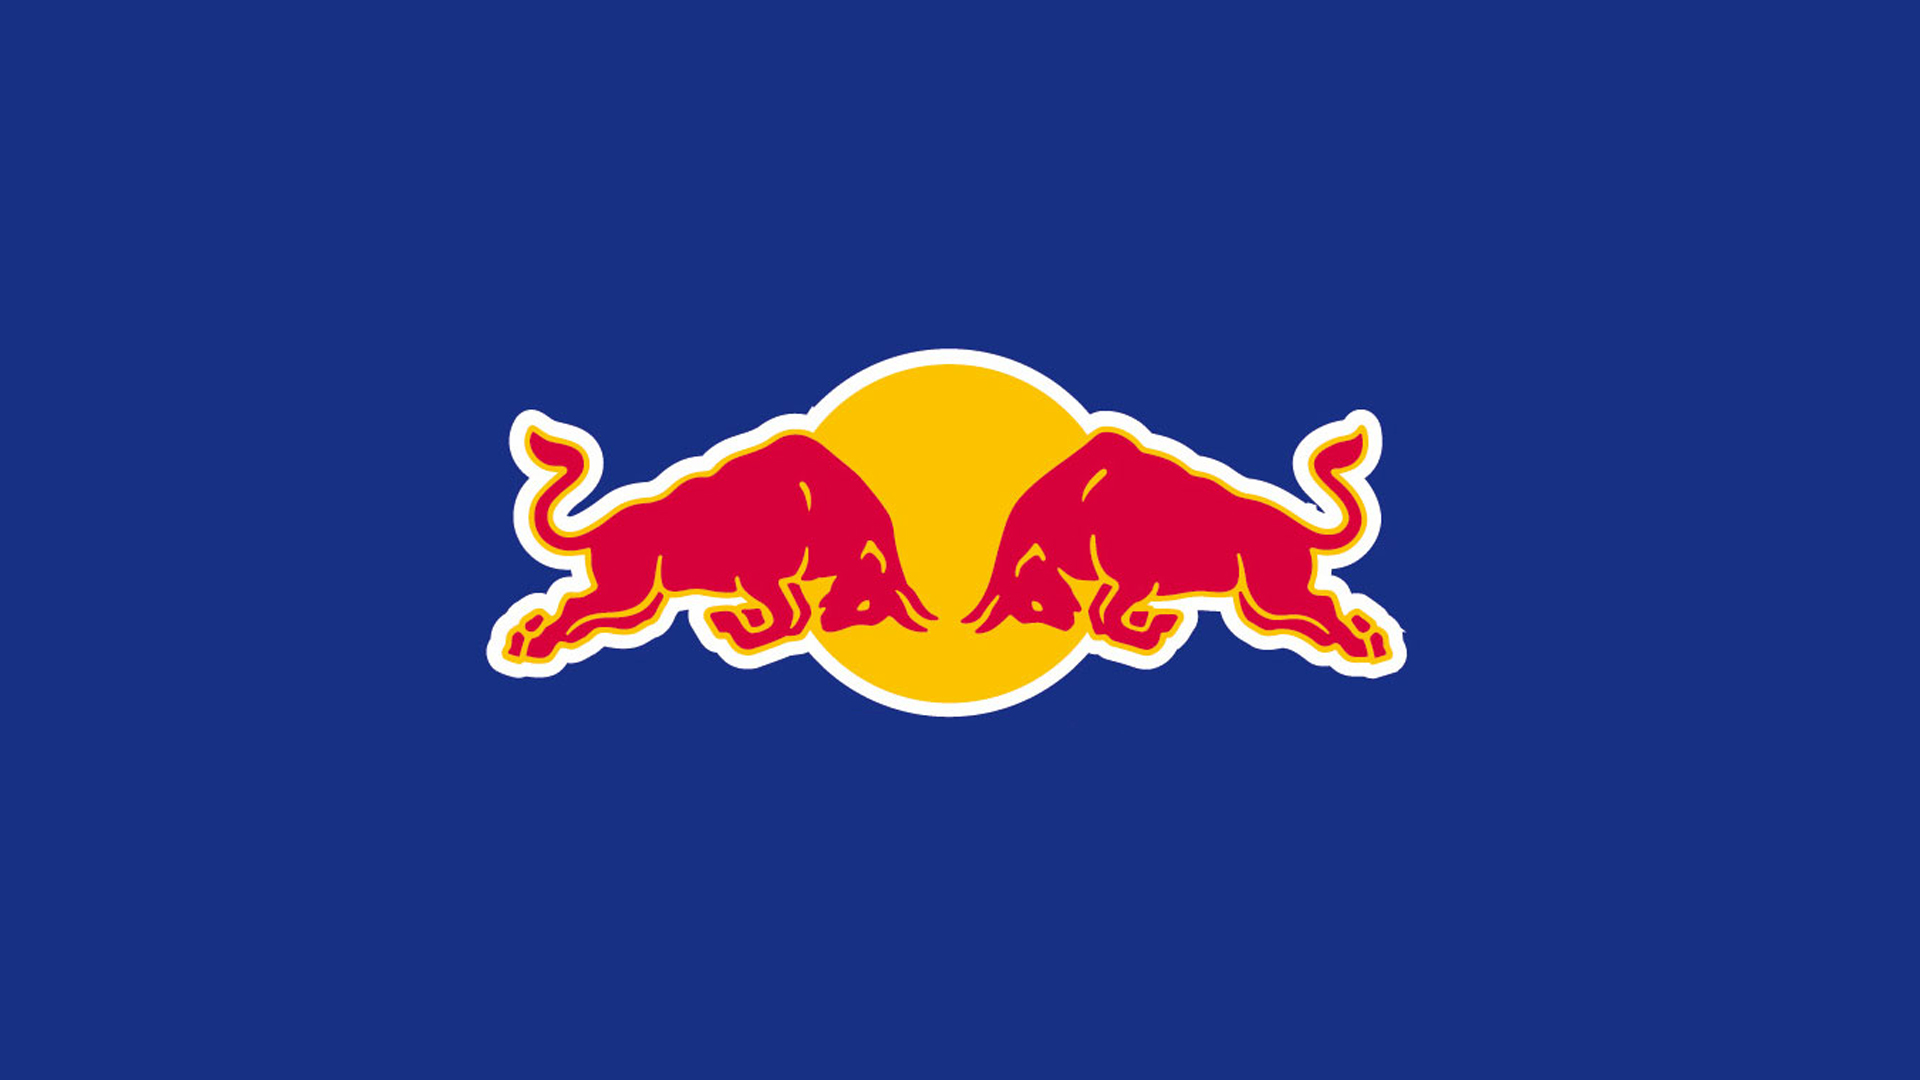 Red Bull Wallpaper Sf Wallpaper